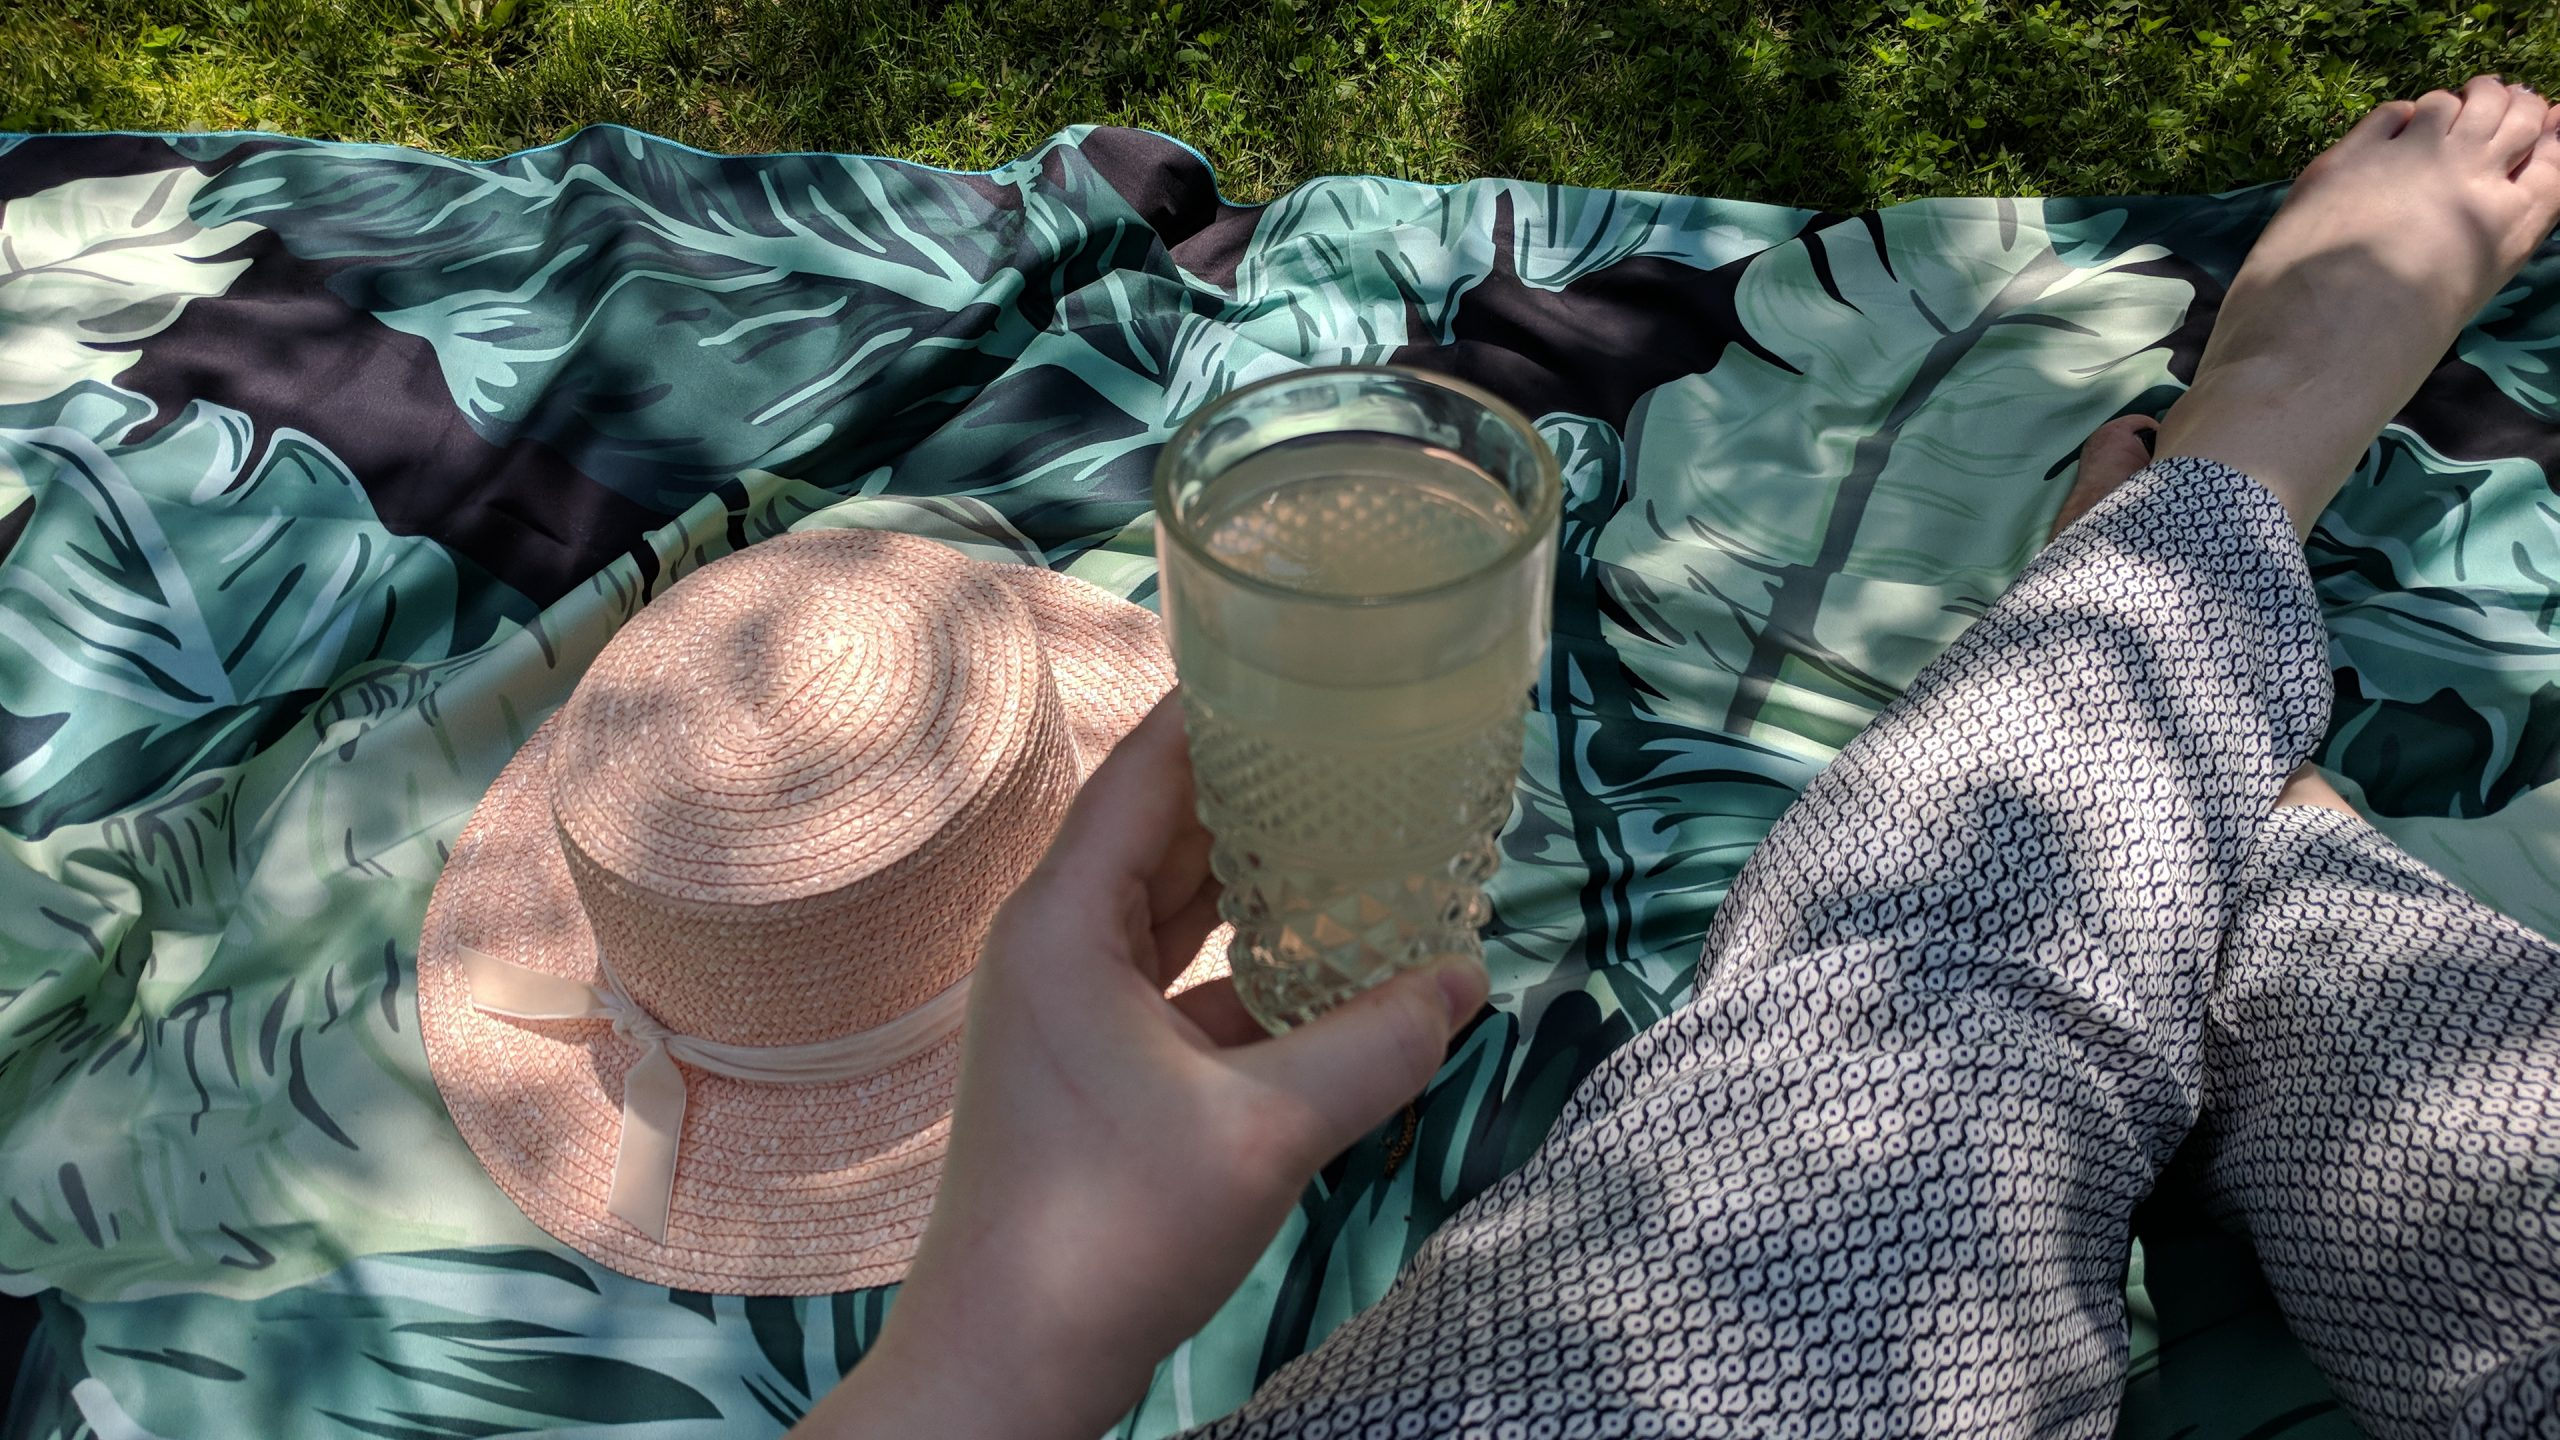 A Dreamy Little Picnic & Pink Boater Hat - Hey Mishka Blog- Lack of Color (3)